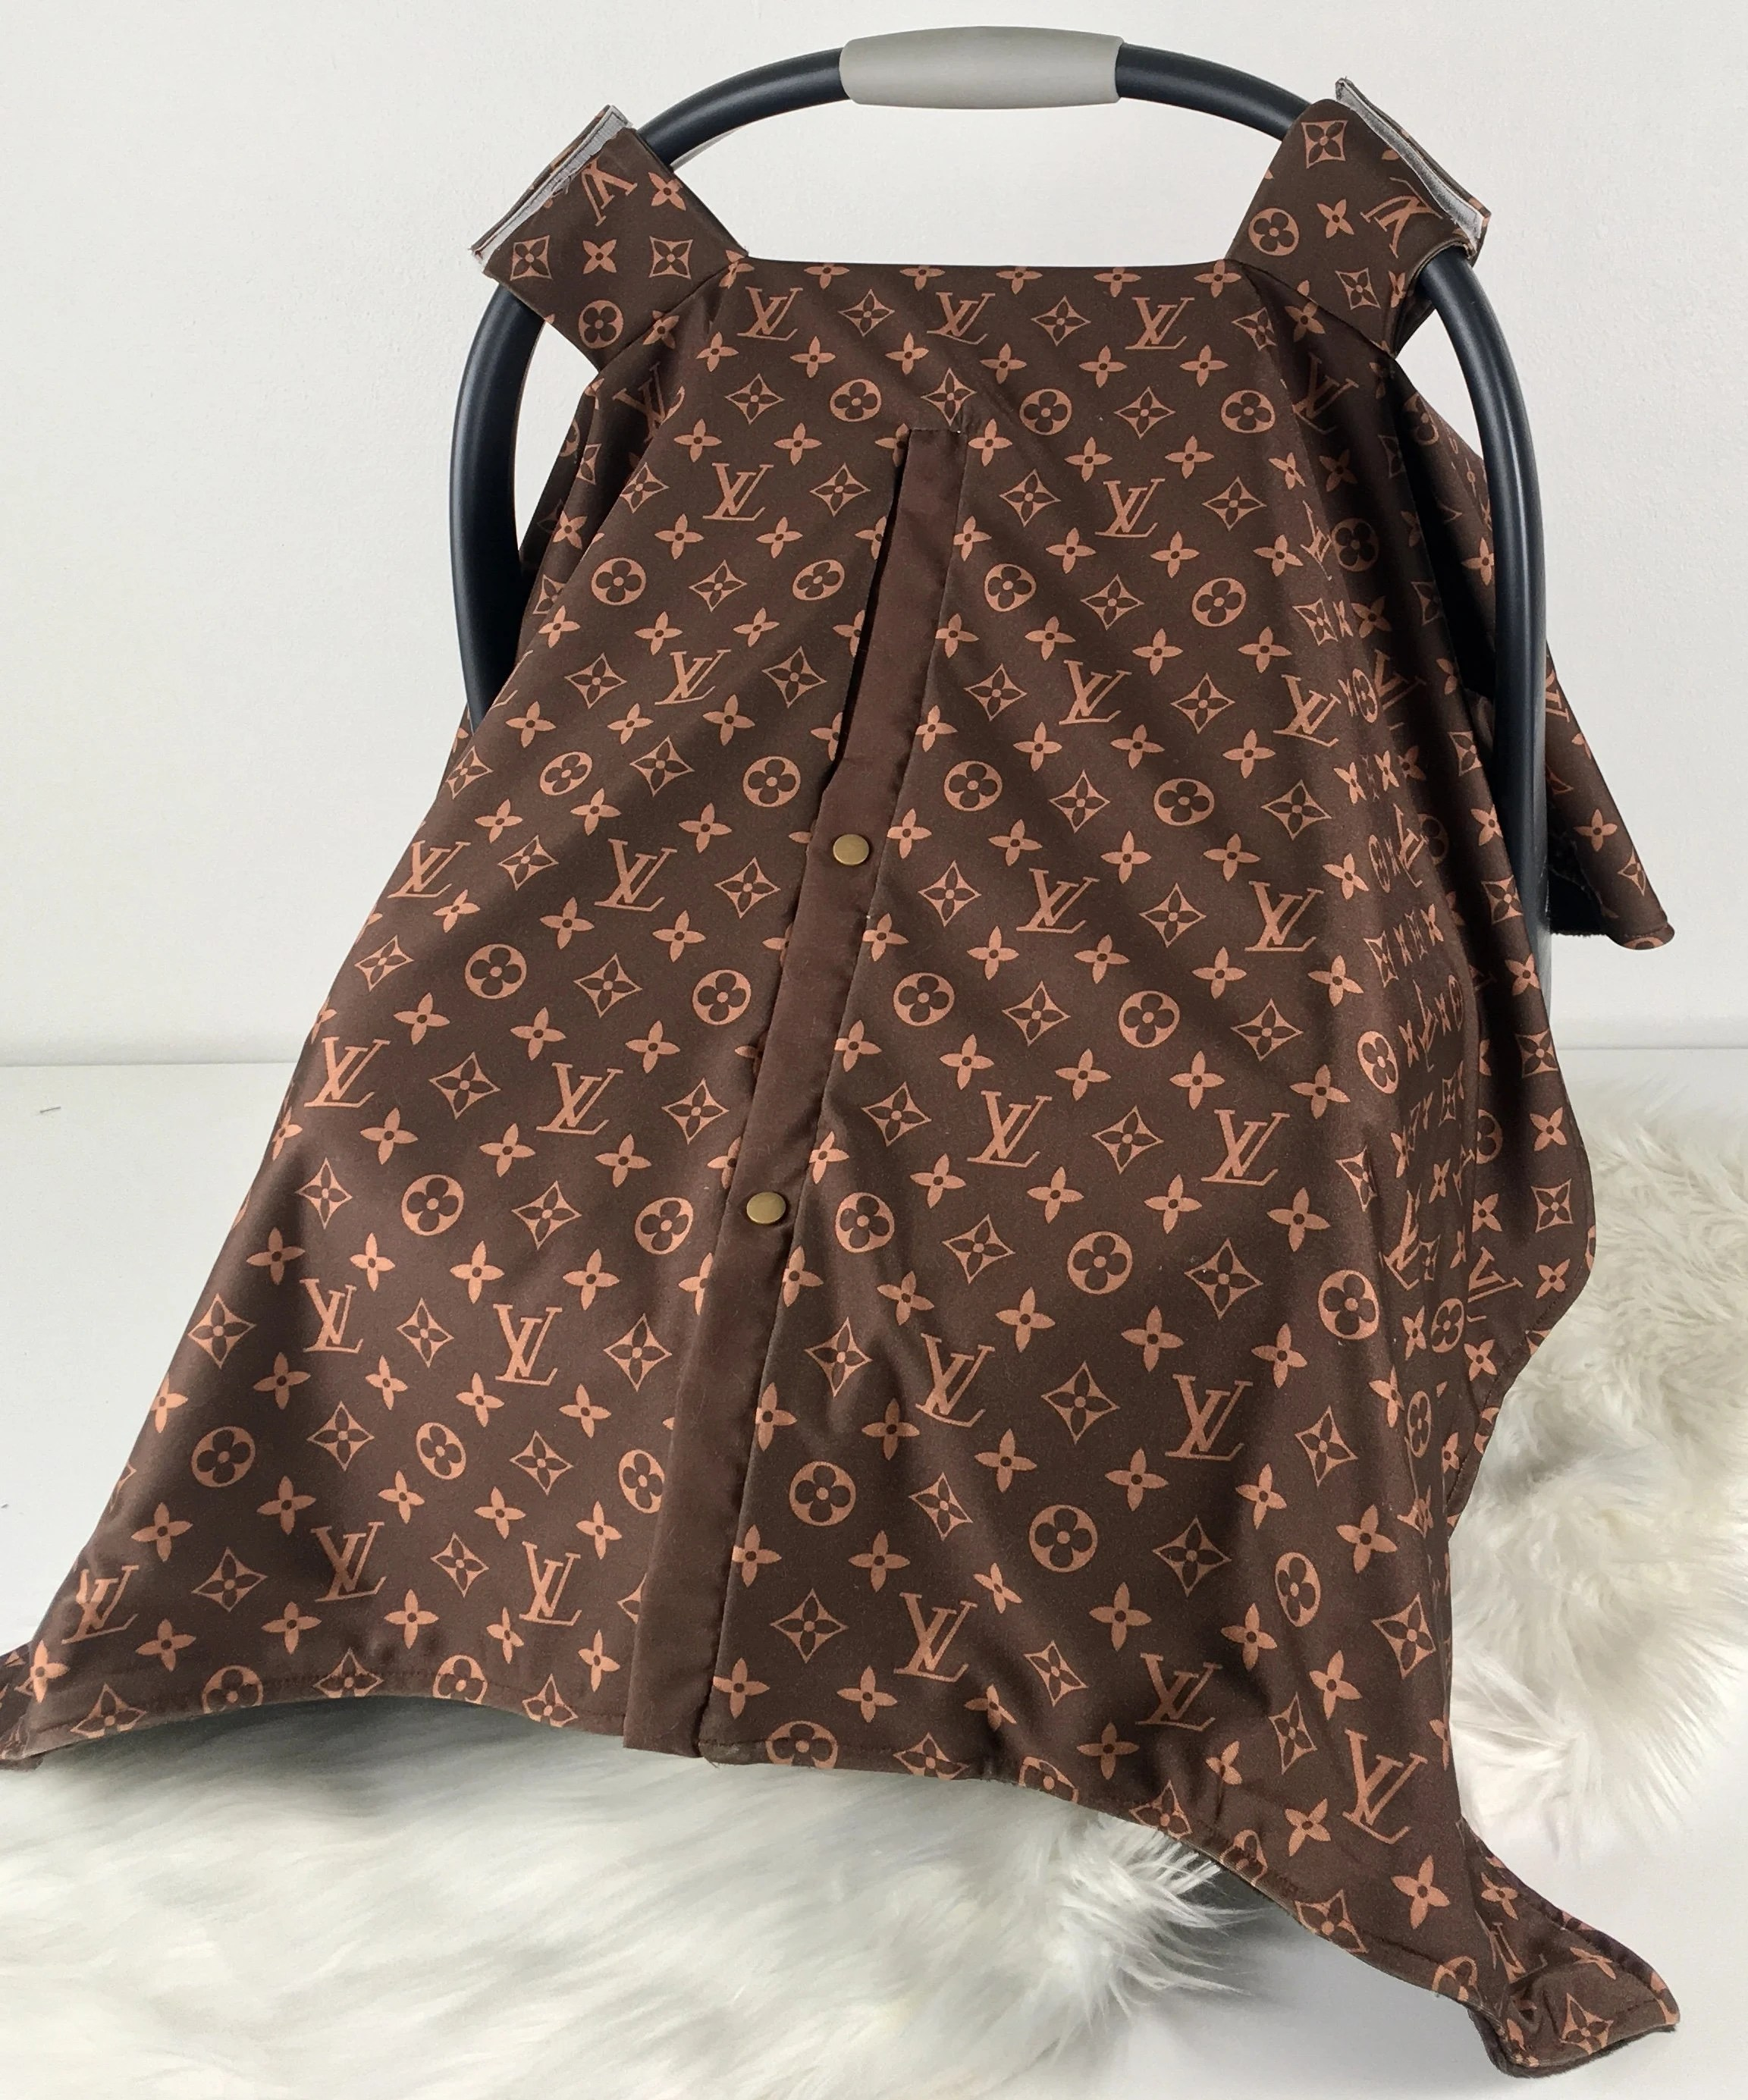 Louis Vuitton Bettwäsche Lv Car Seat Canopy For Boy Or Girl Car Seat Canopy Blanket That Doubles As A Nursing Cover Message Us For Other Fabric Options